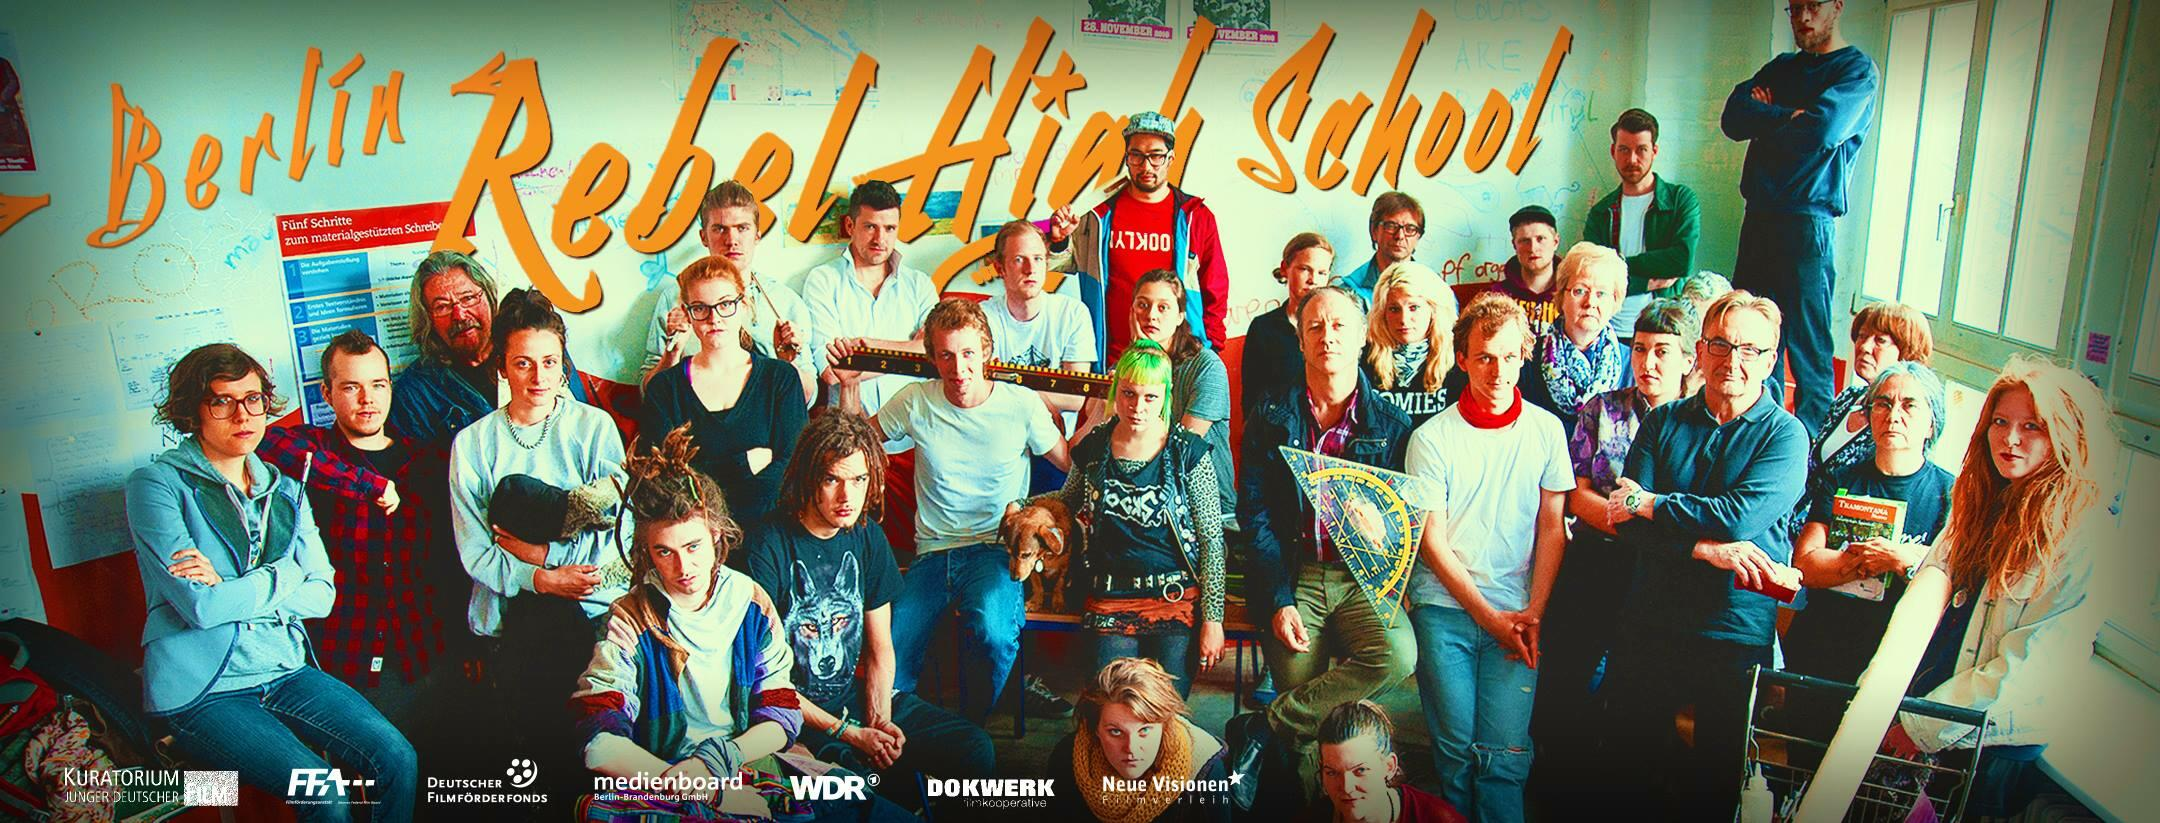 Berlin Rebel High School Stream